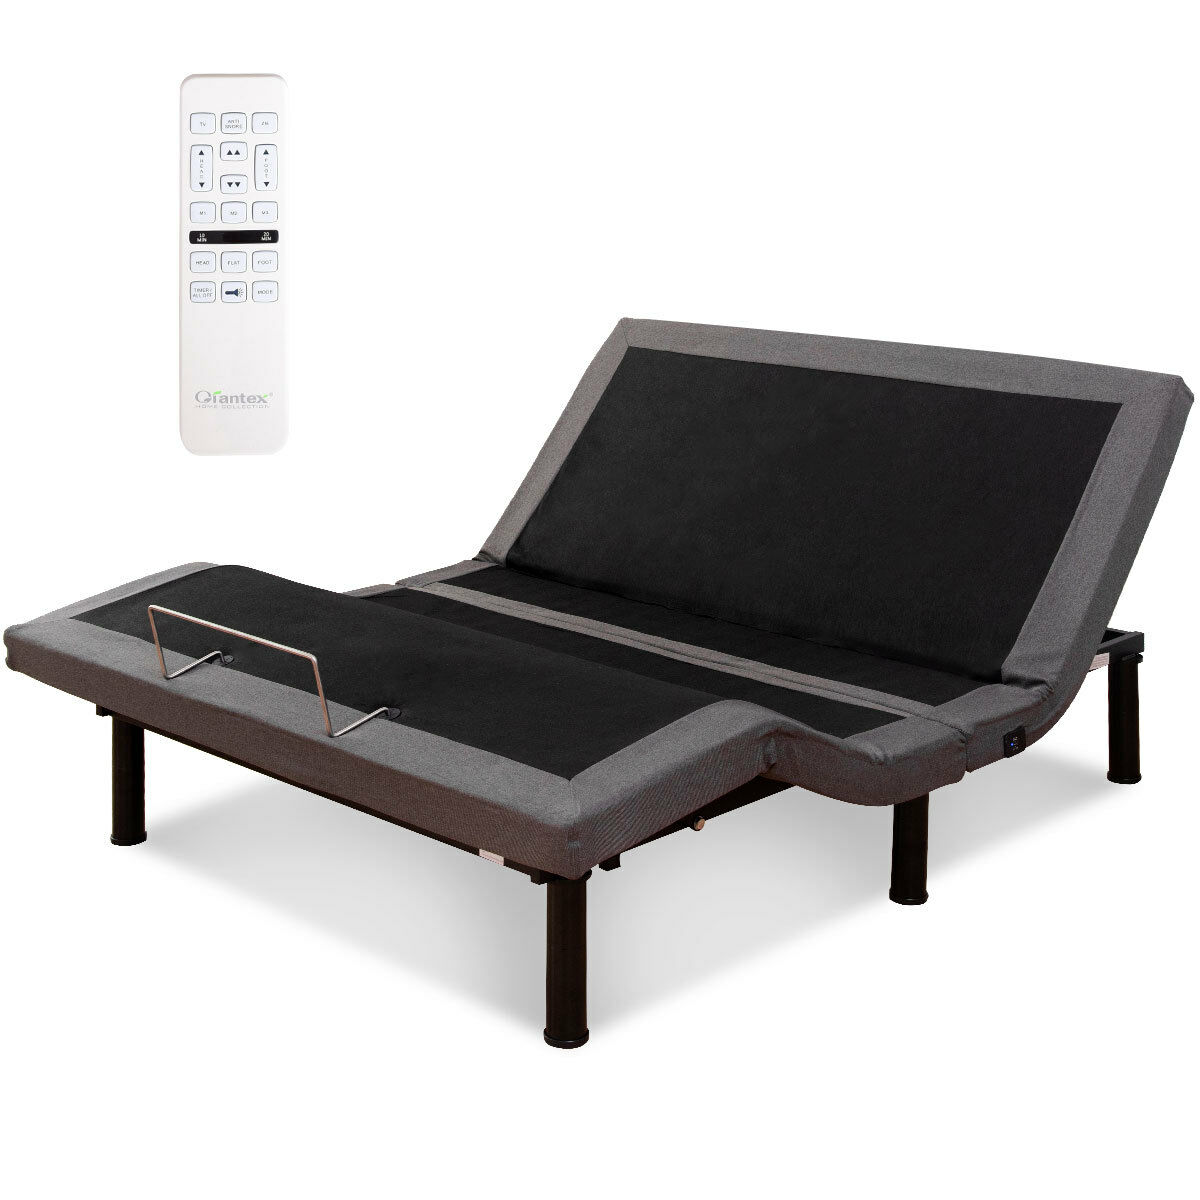 Costway Adjustable Massage Bed Base Upholstered Wireless Remote USB Ports Twin XL